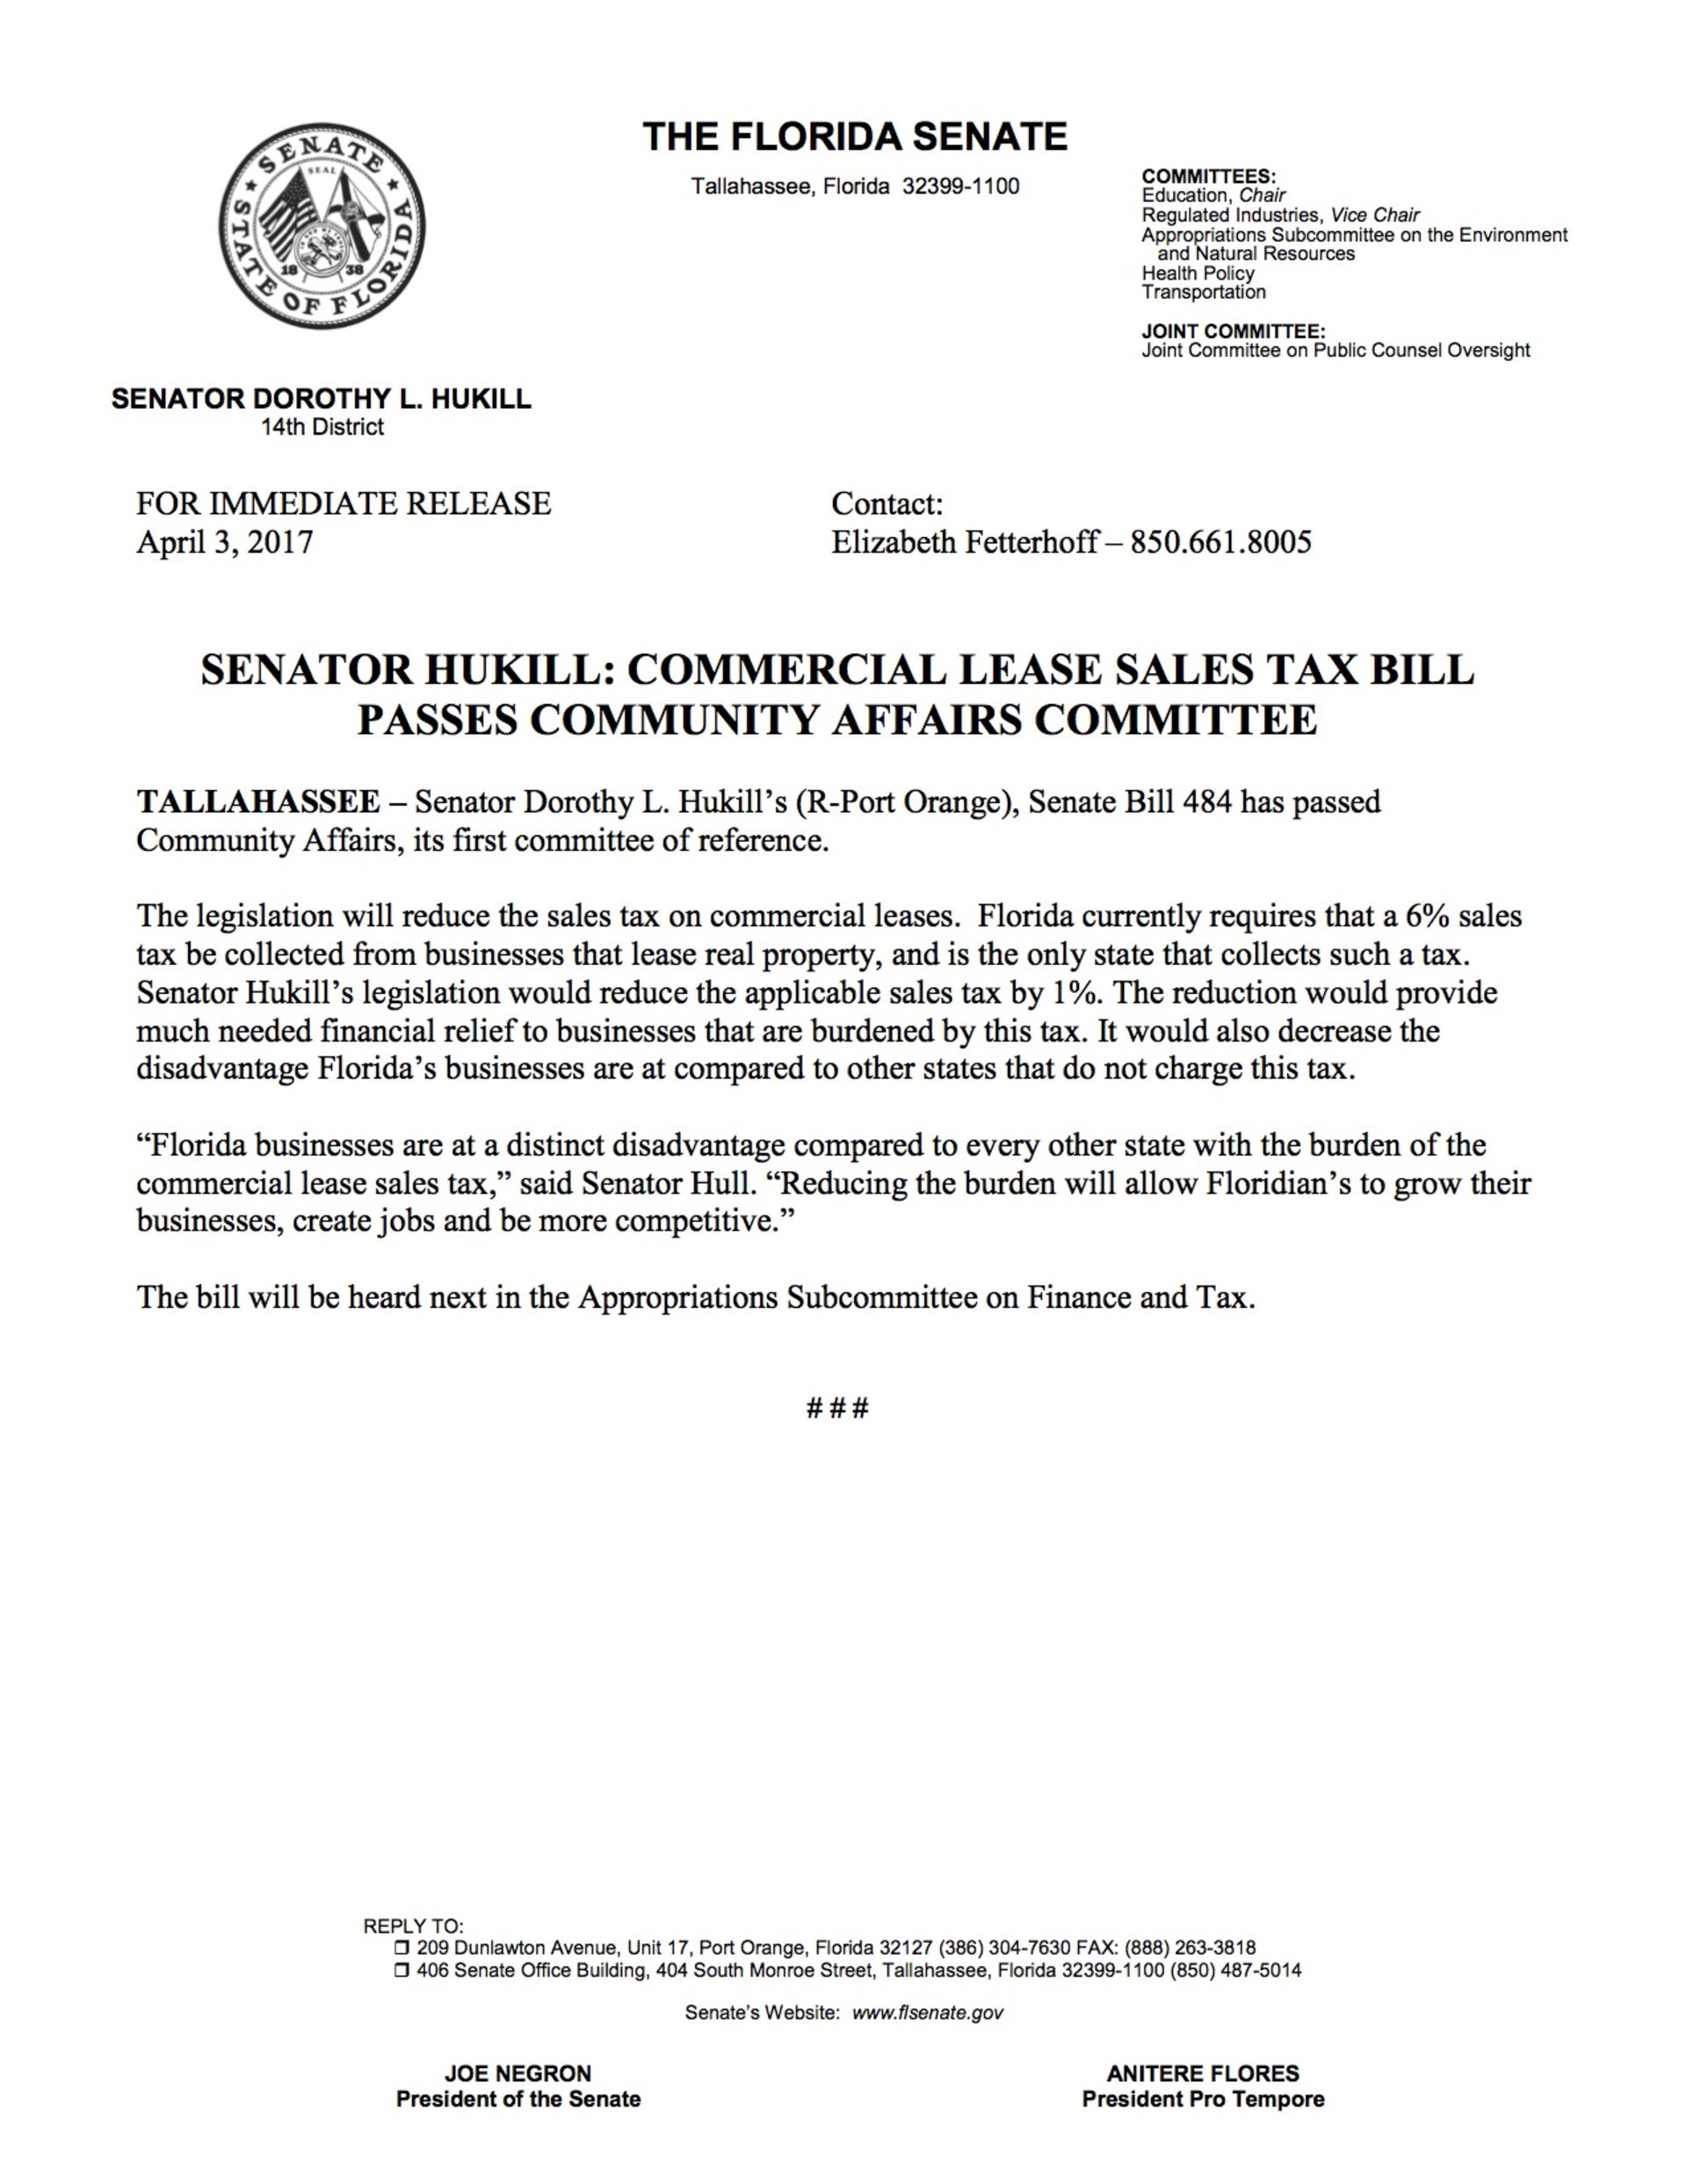 SENATOR HUKILL: COMMERCIAL LEASE SALES TAX BILL PASSES COMMUNITY AFFAIRS COMMITTEE